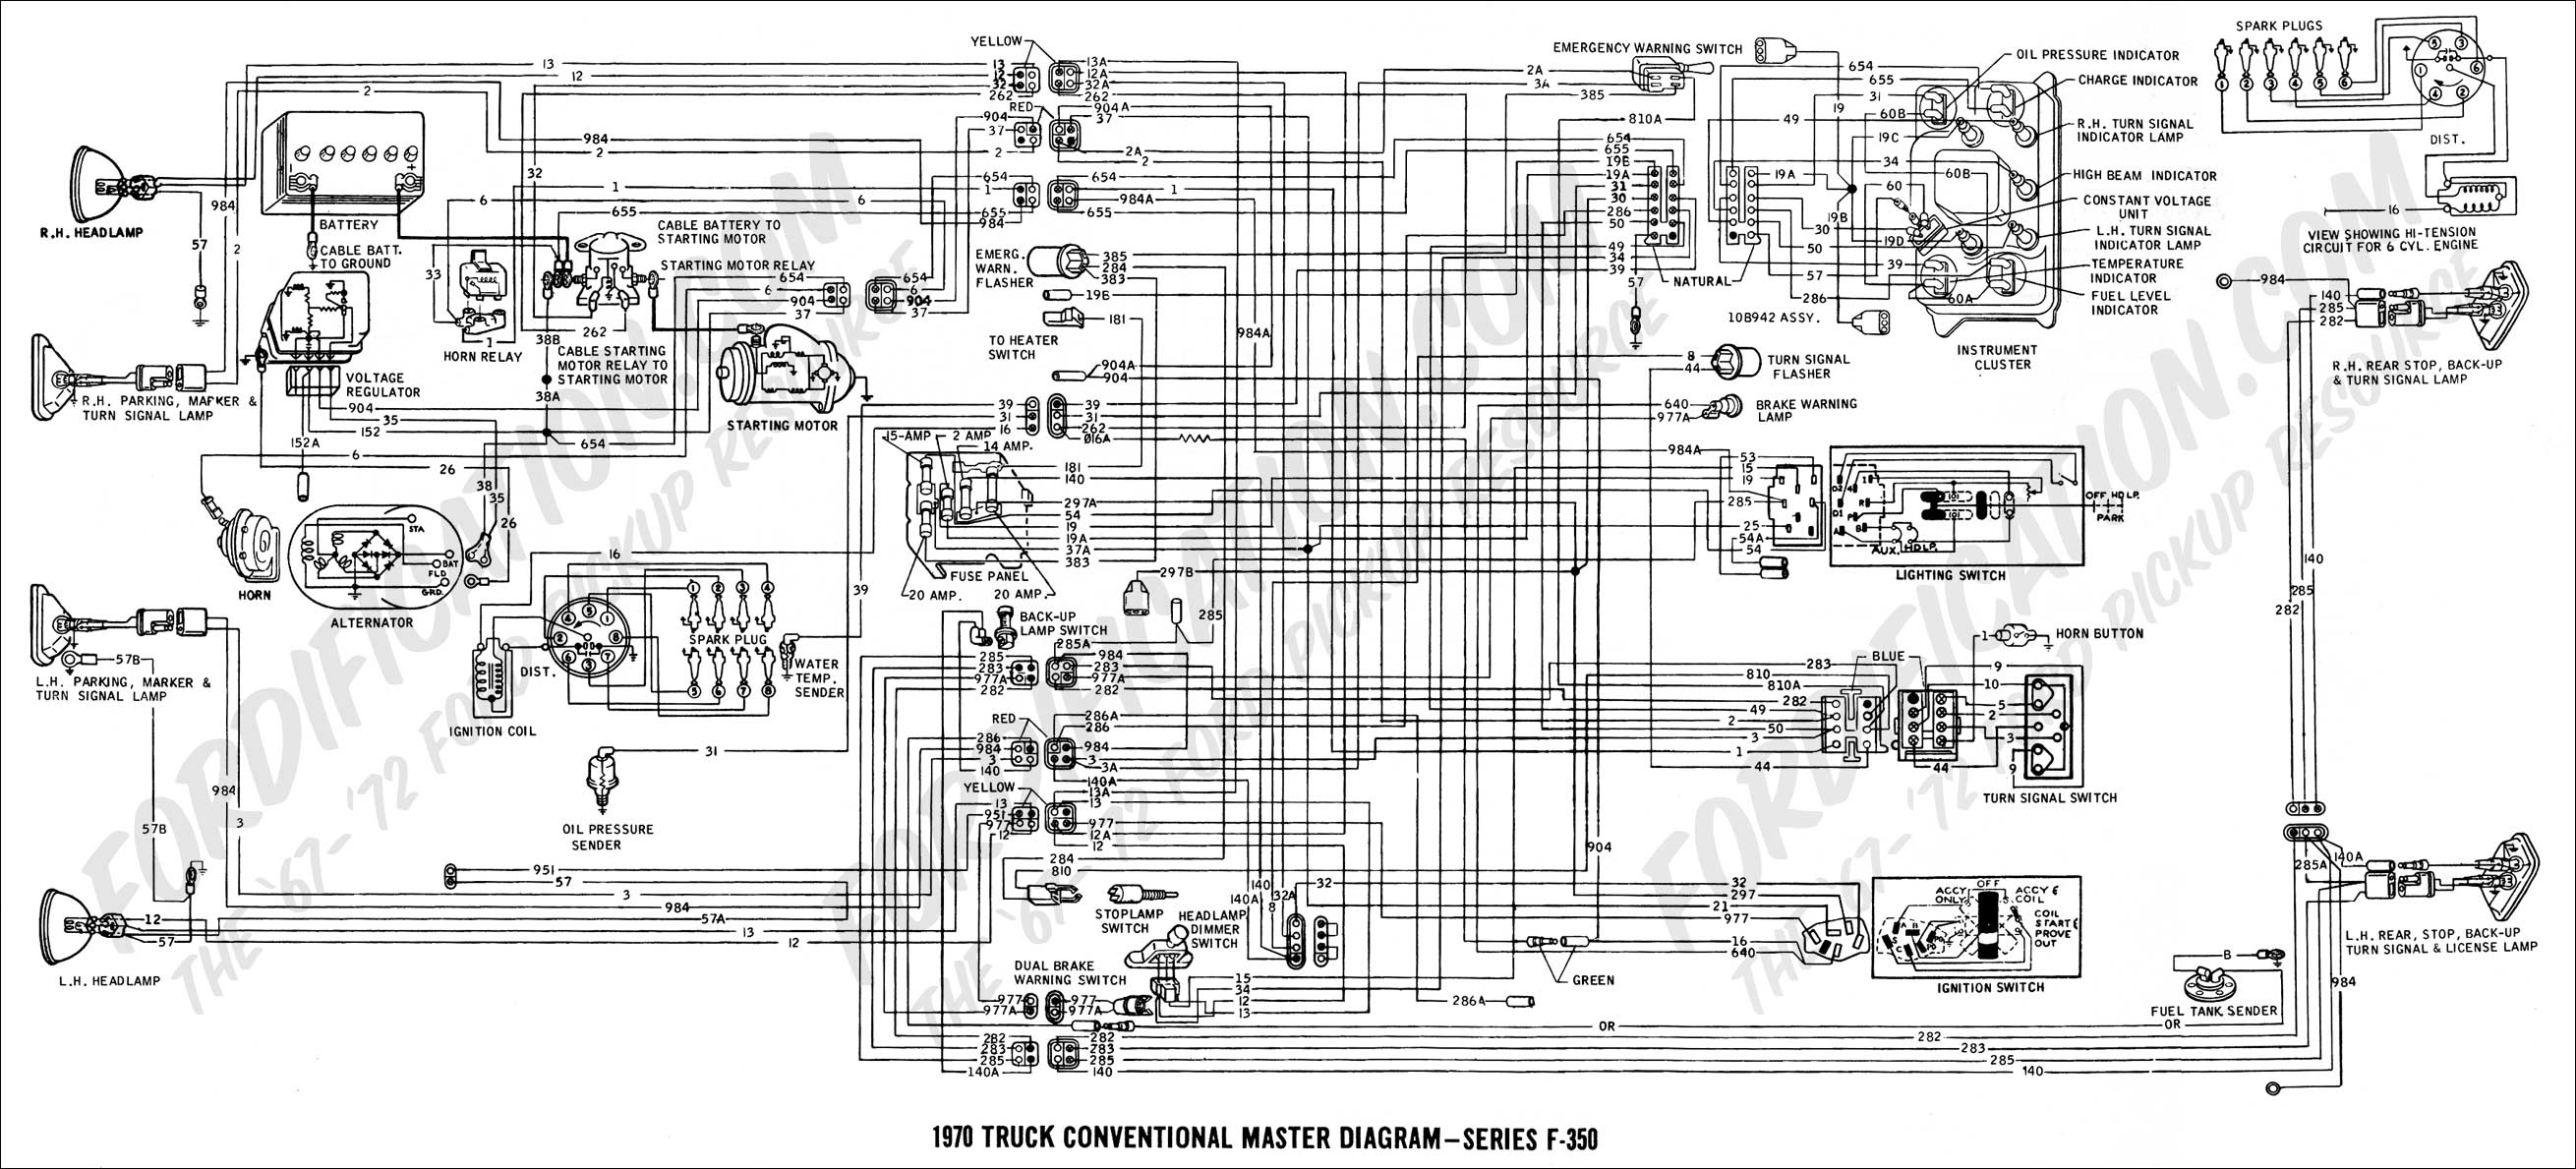 Ford Wire Diagram - Wiring Diagrams Click - Trailer Wiring Diagram With Brakes